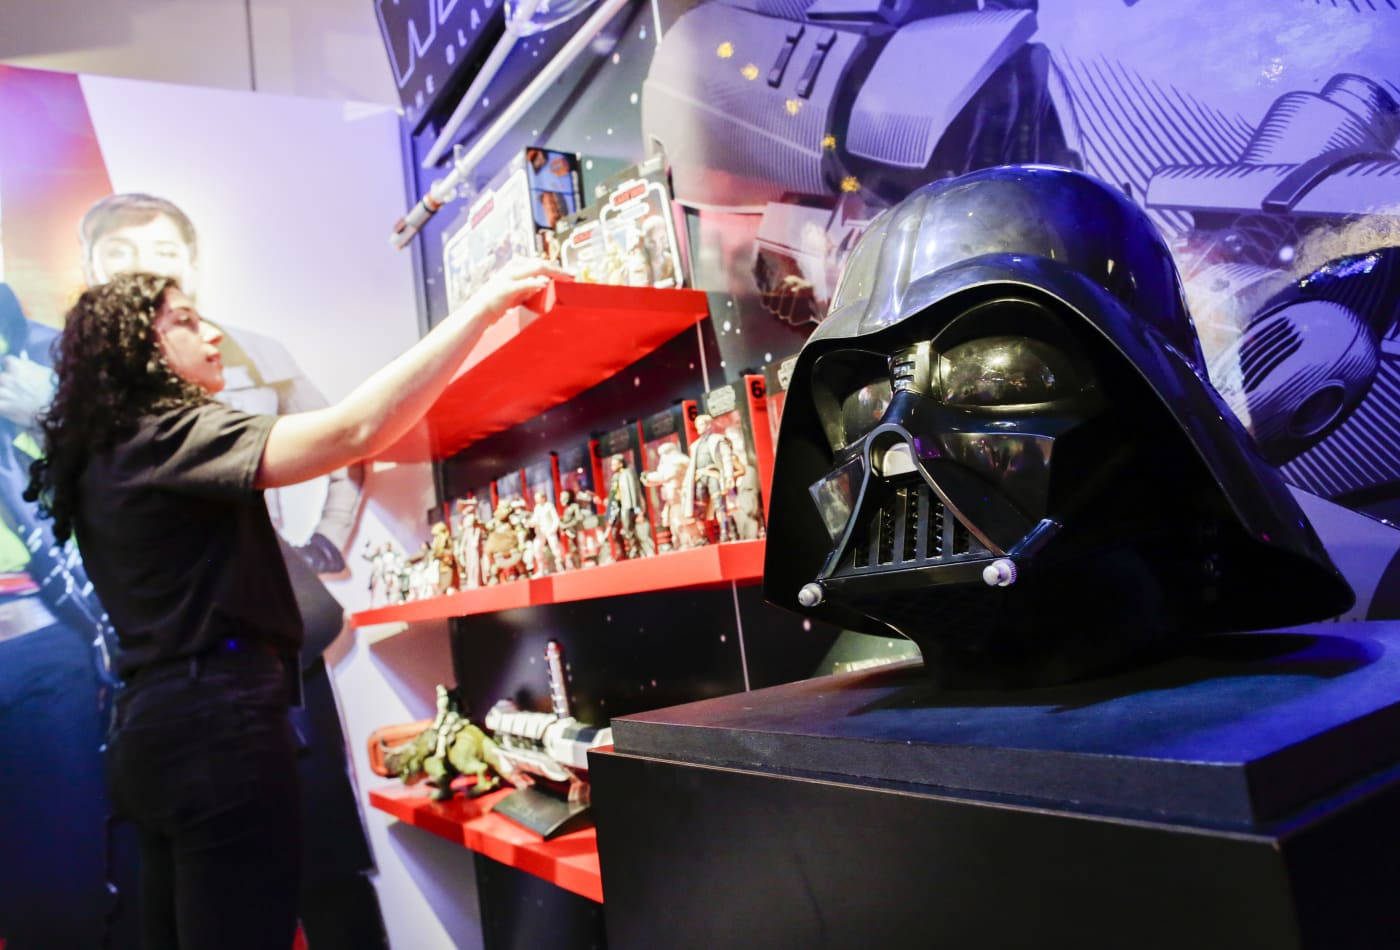 Hasbro extends Disney pact for Star Wars, Marvel toys and games